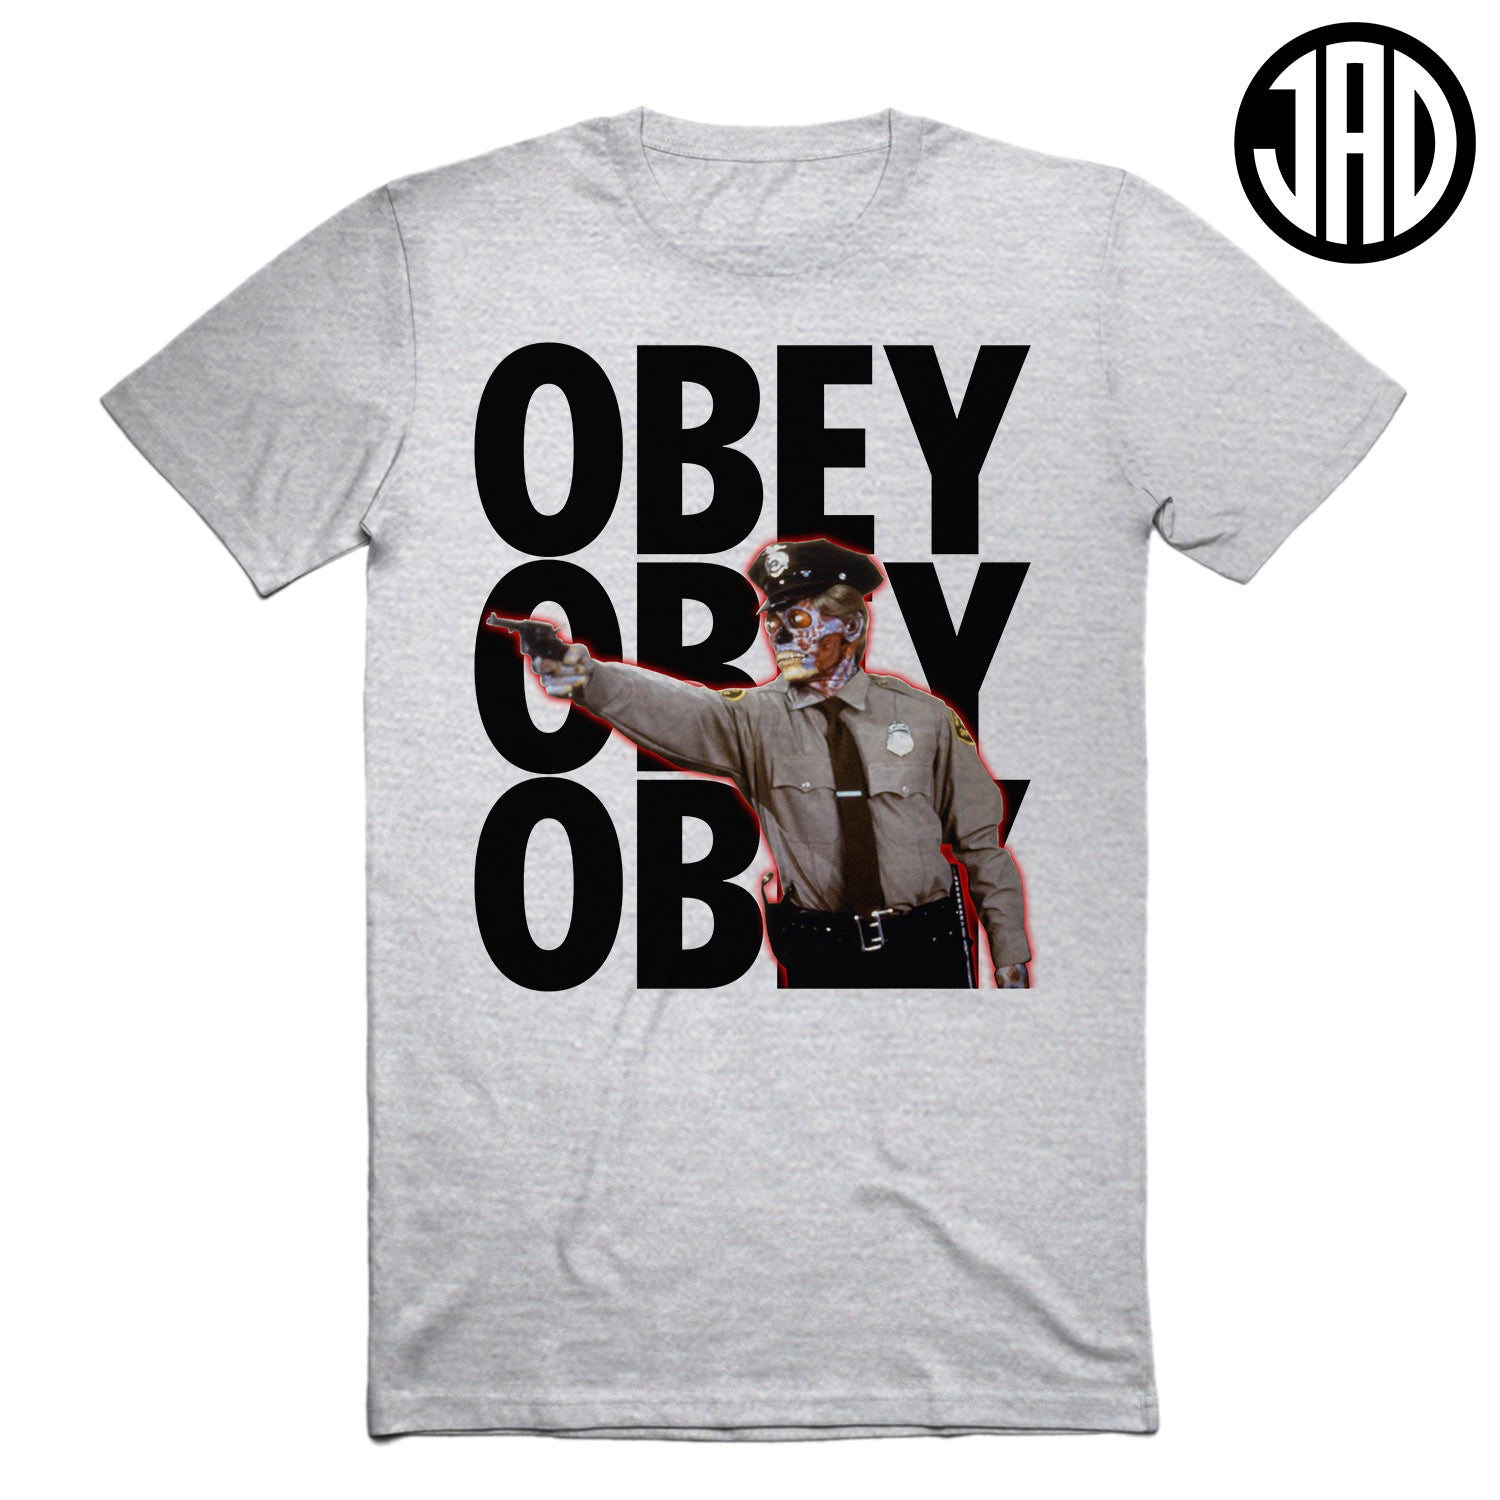 Do Not Question Authority - Men's (Unisex) Tee